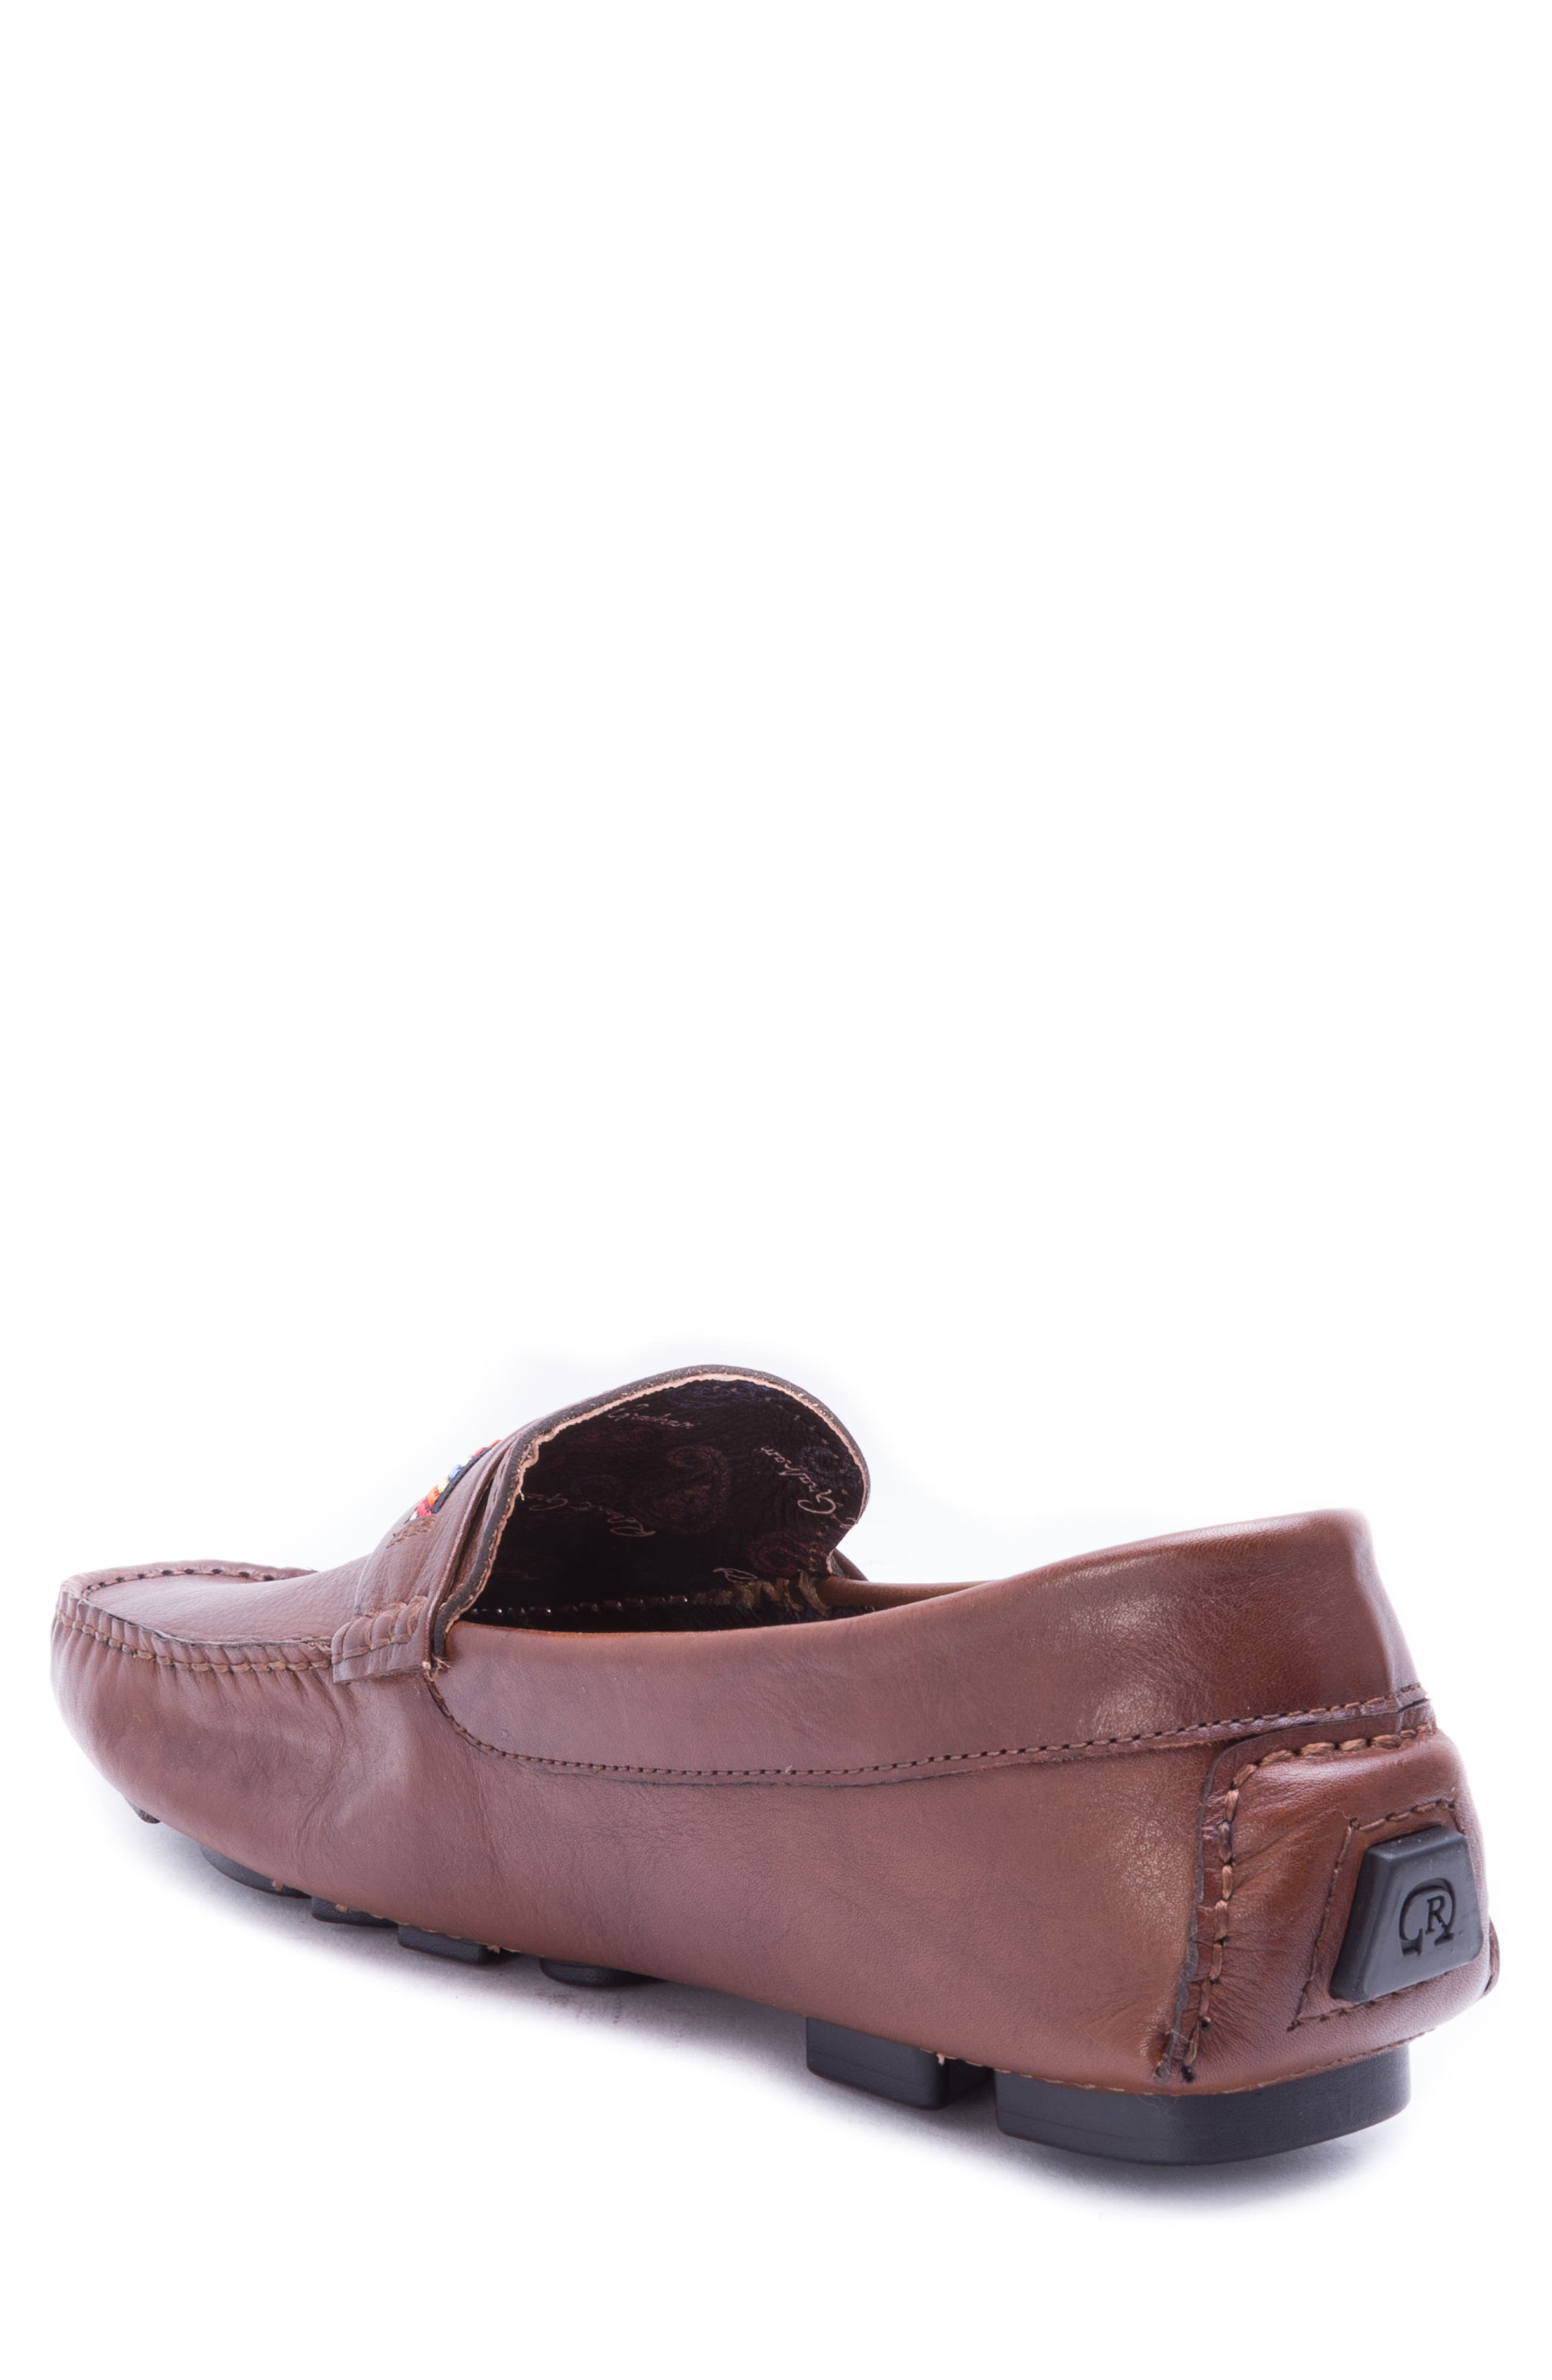 Hart Driving Moccasin,                             Alternate thumbnail 2, color,                             COGNAC LEATHER